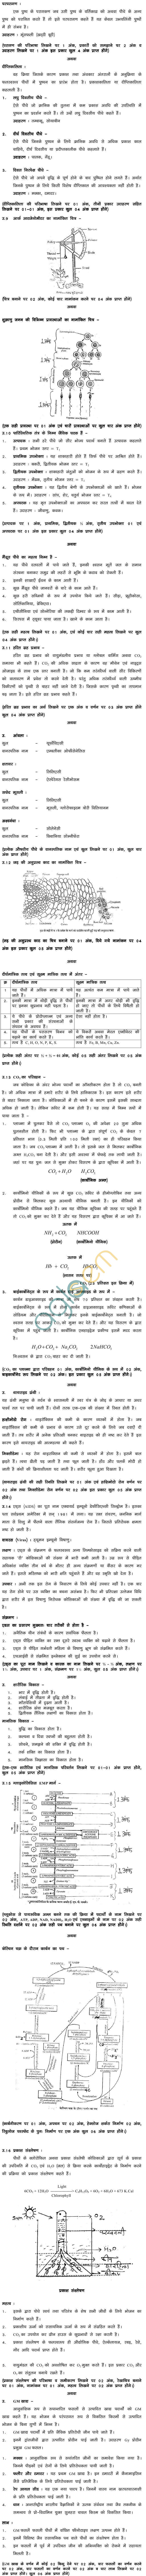 MP Board Class XII Biology Model Questions & Answers - Set 2